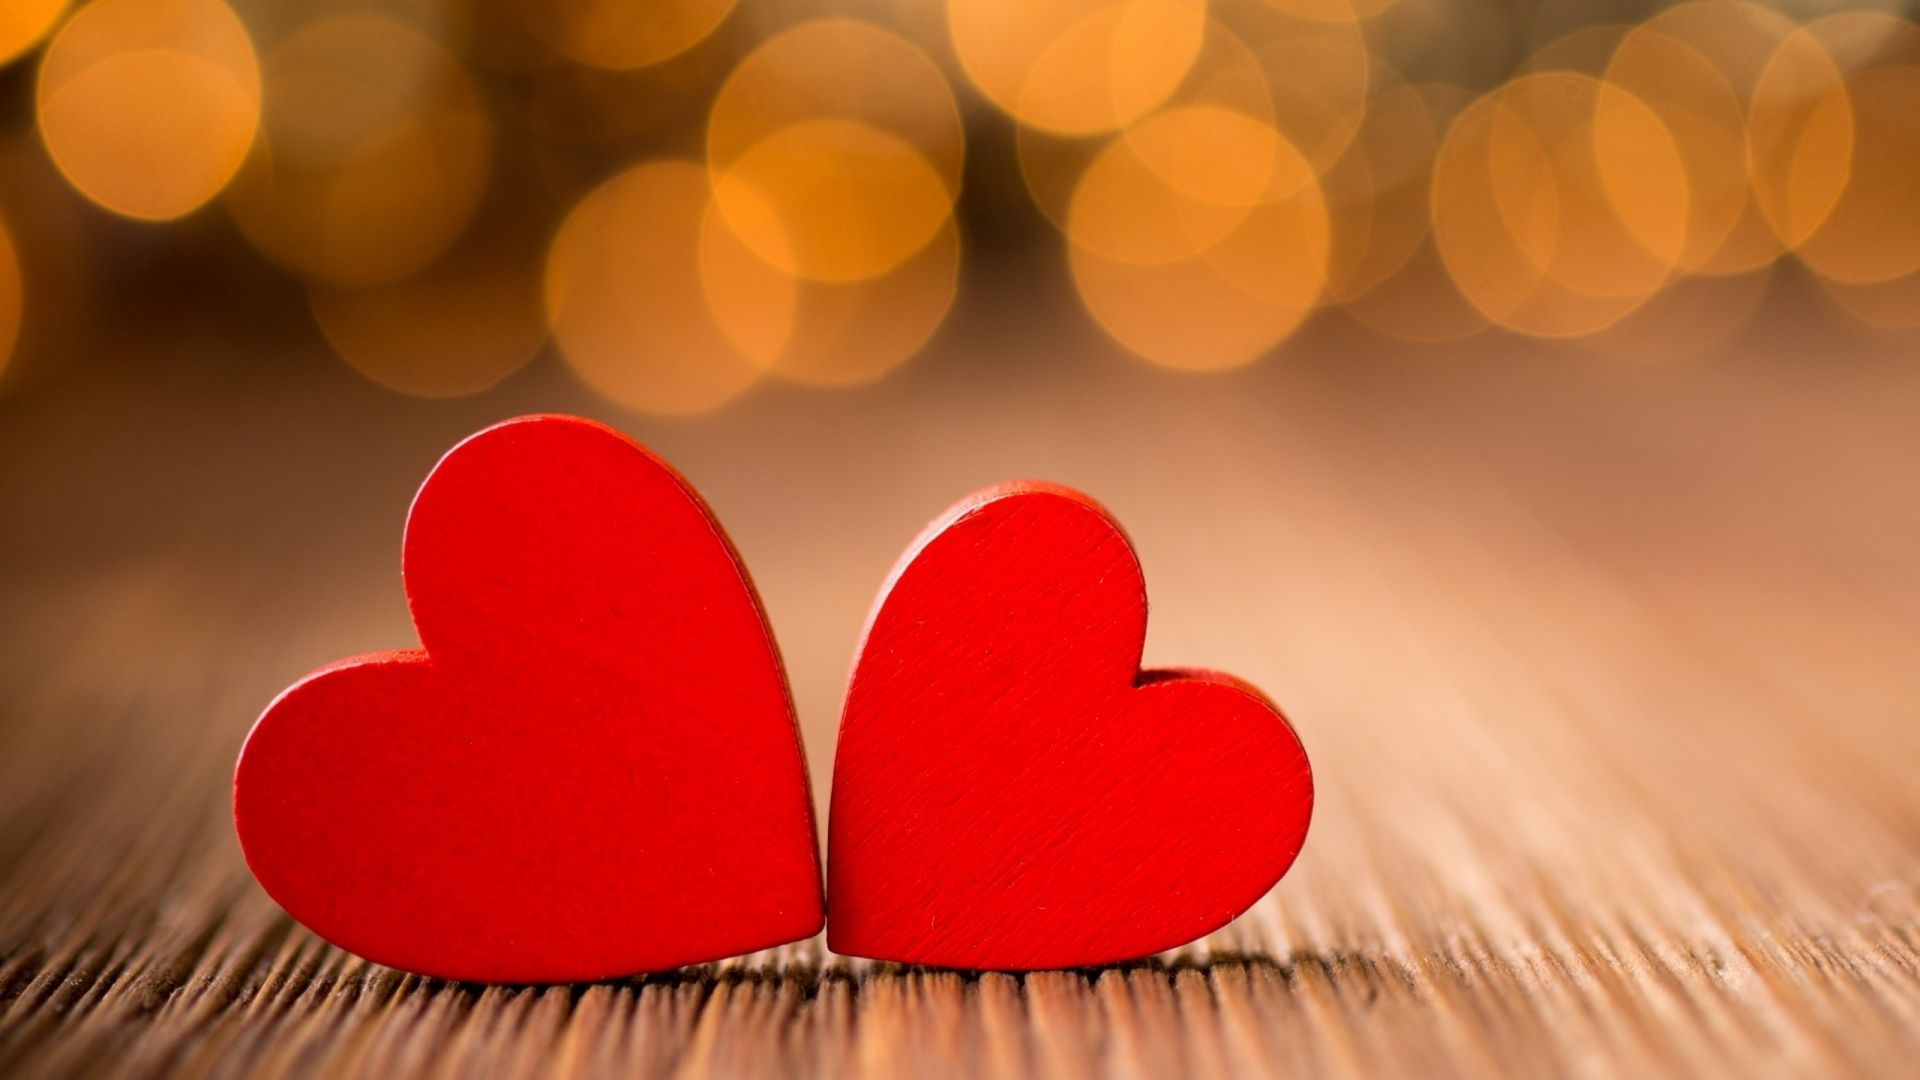 1920x1080 Heart In Love Wallpaper HD | Wallpapers, Backgrounds, Images ...